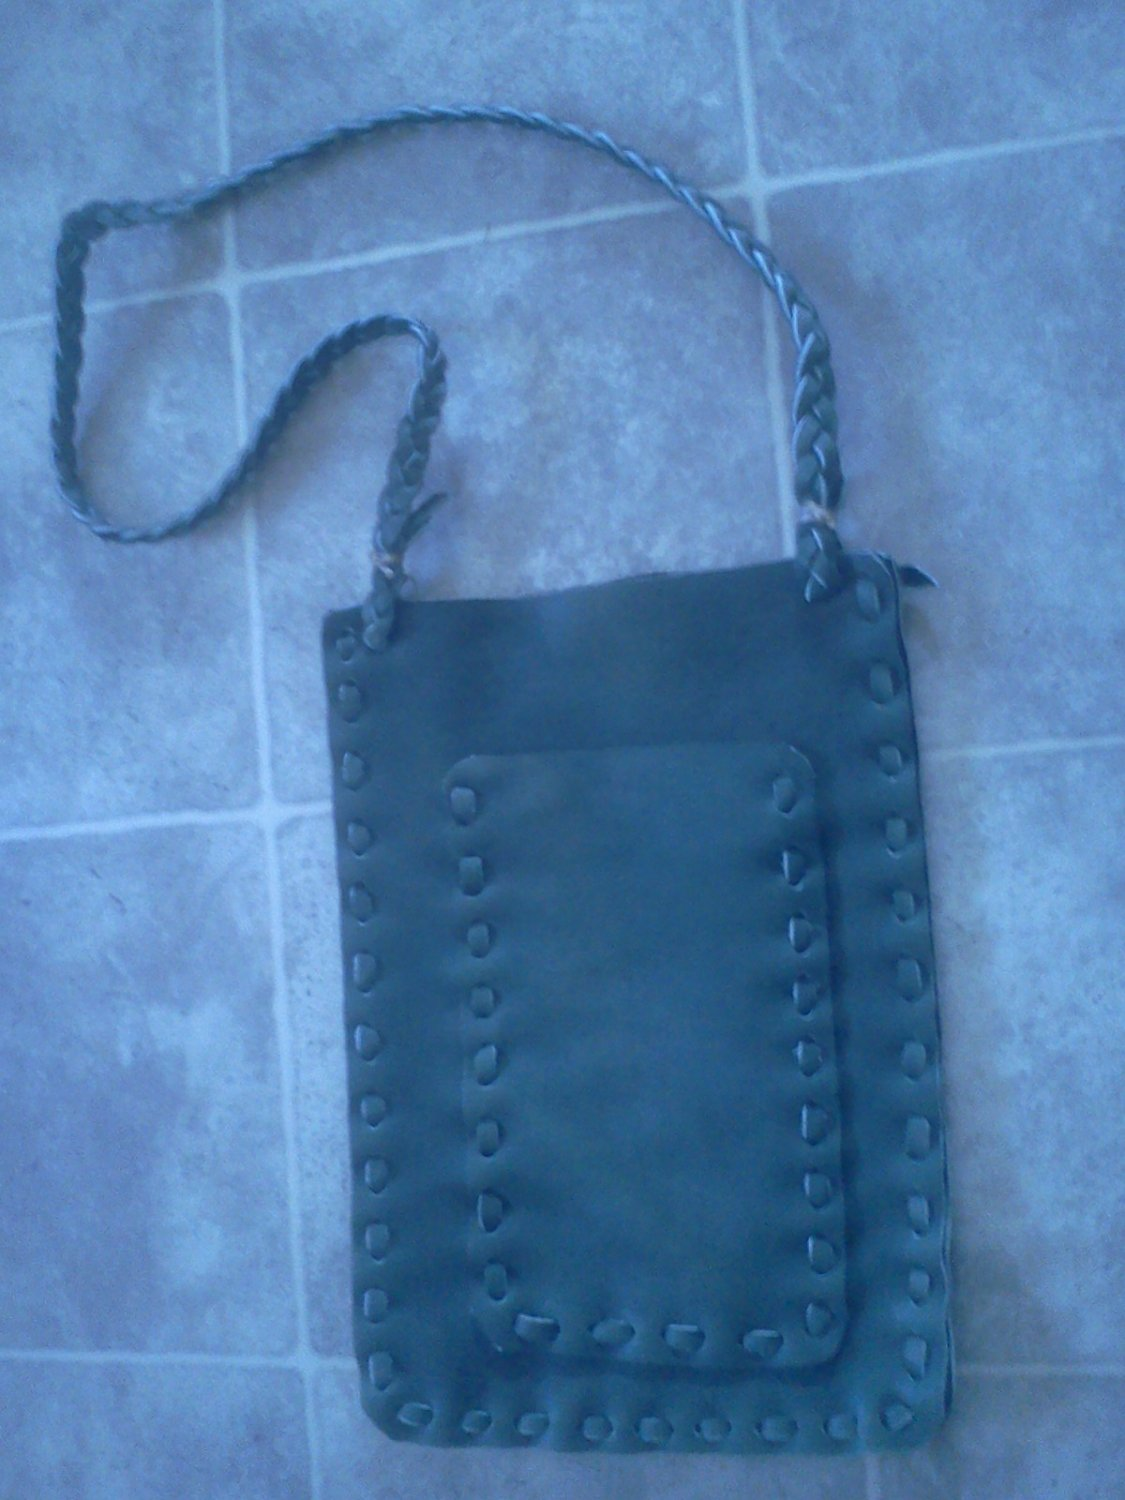 POSSIBLE BAG